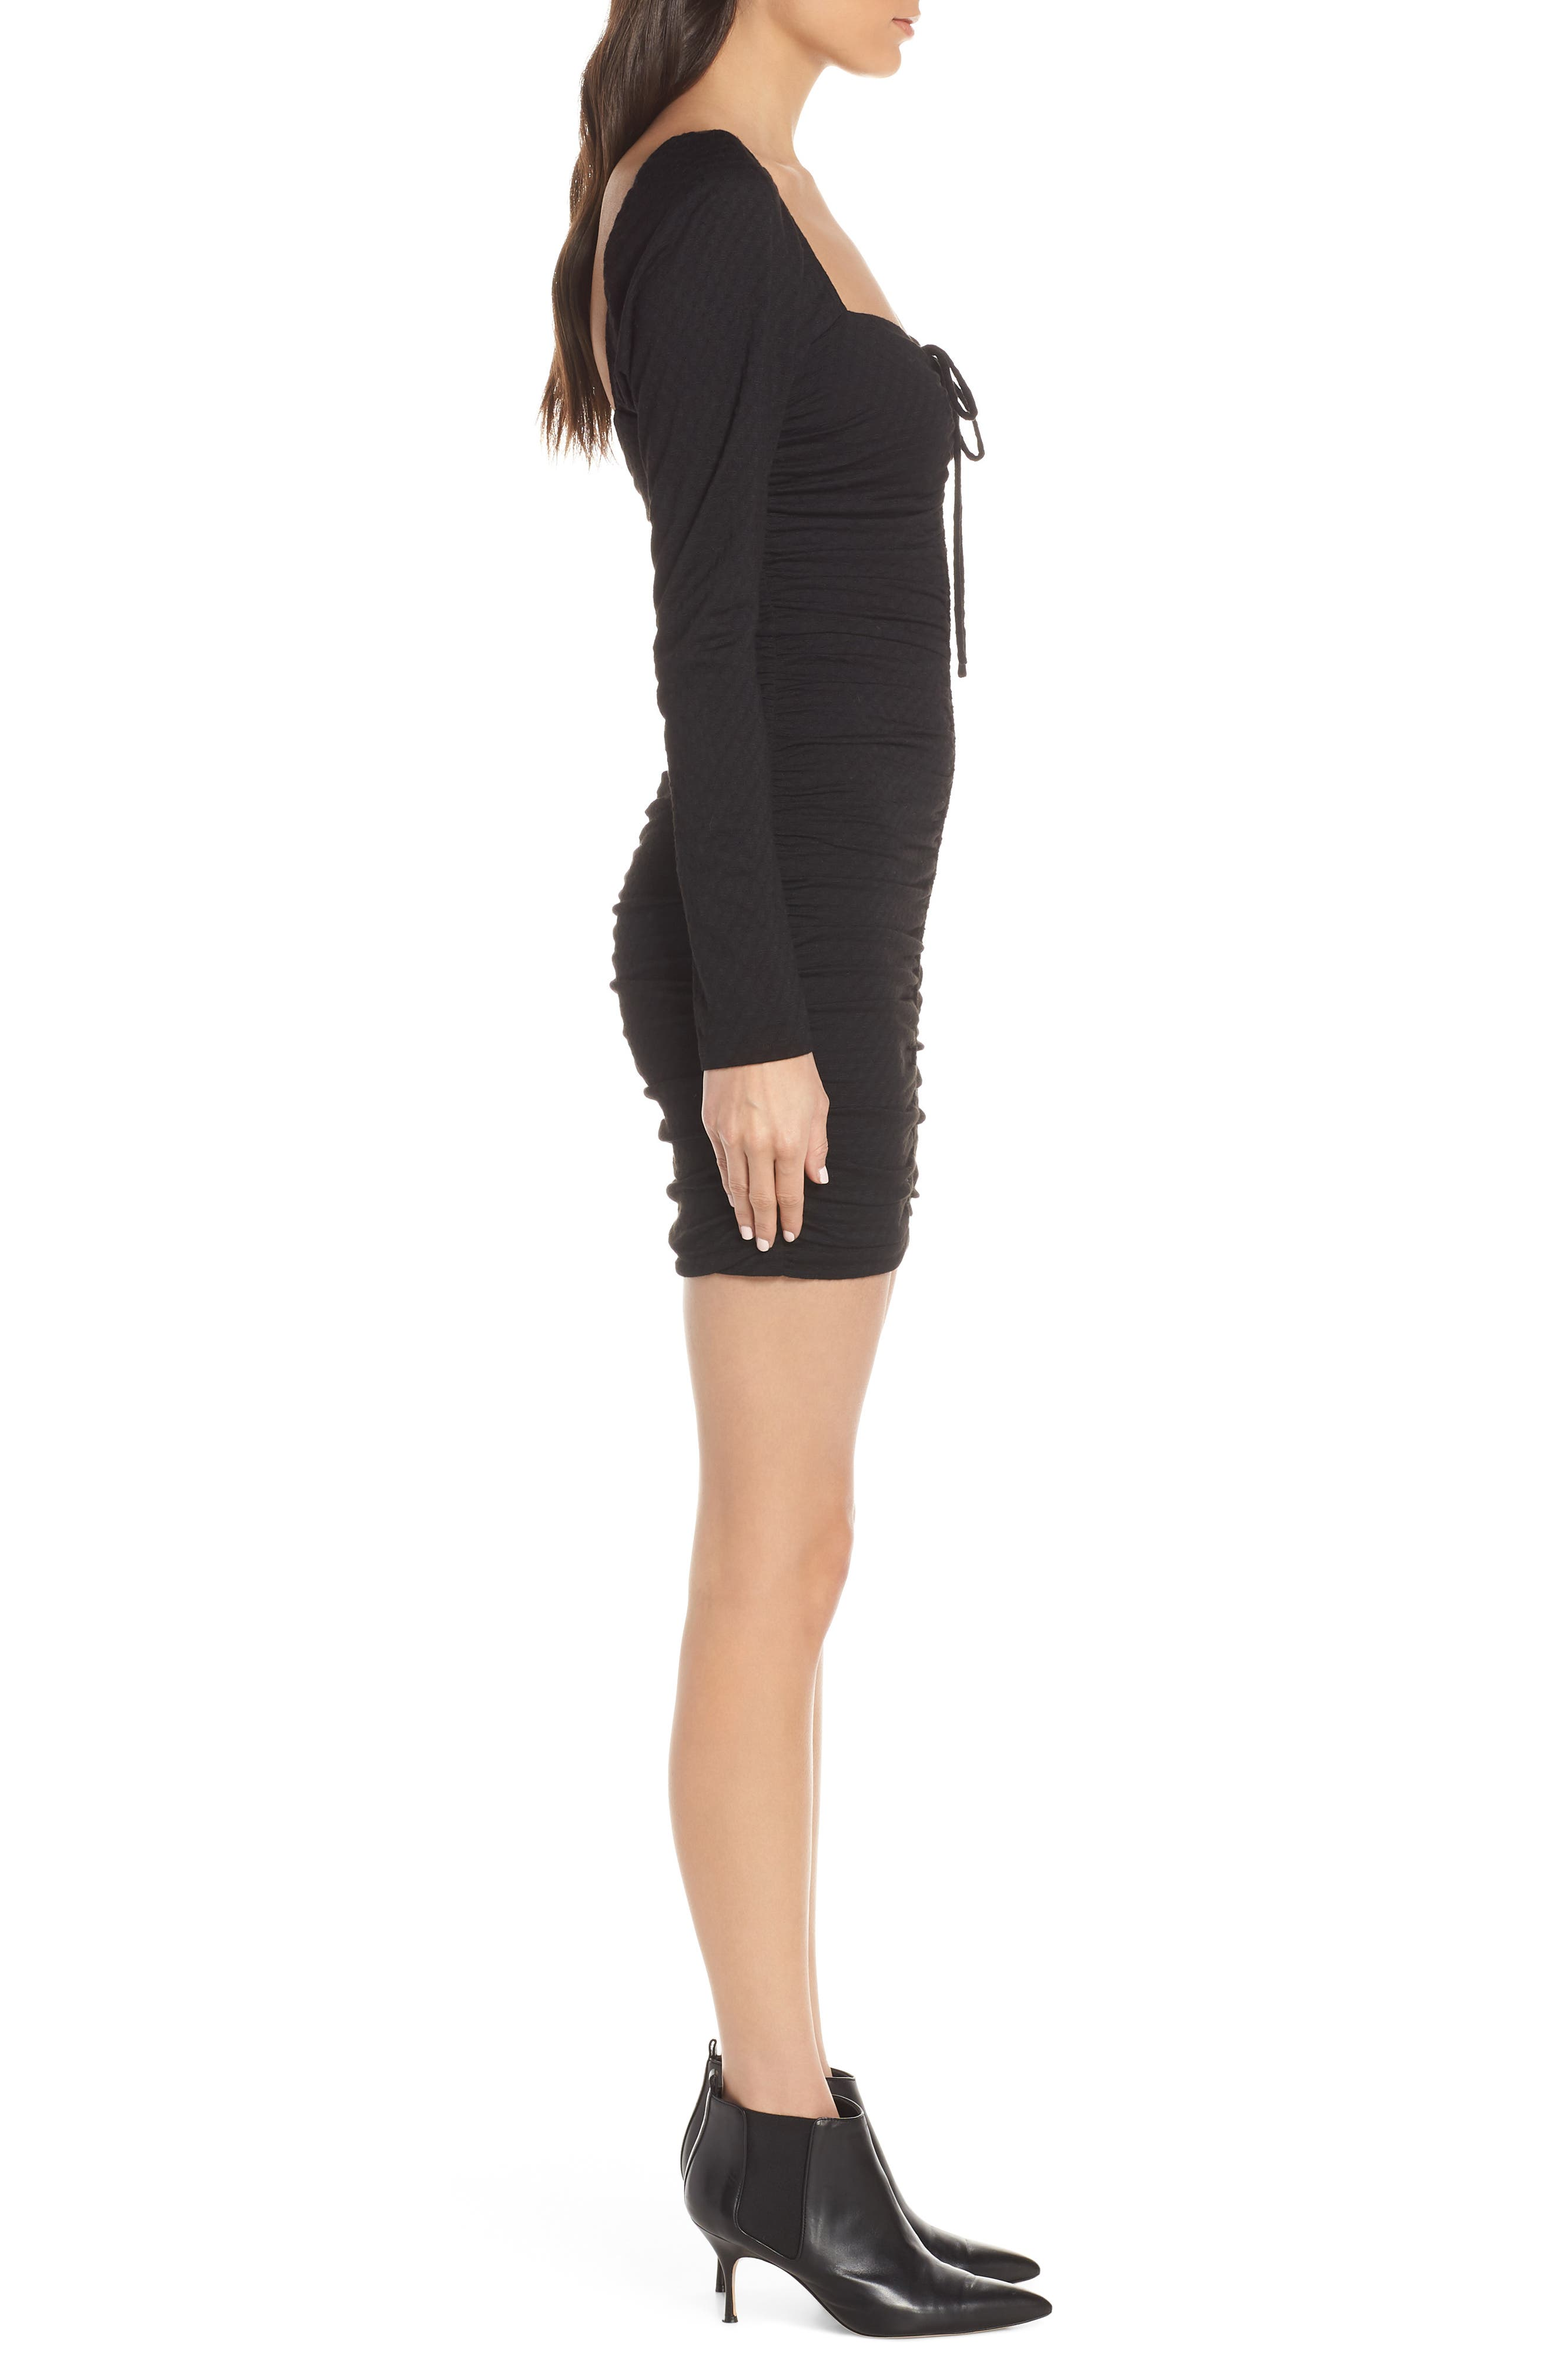 ALI & JAY, Ruched Body-Con Dress, Alternate thumbnail 4, color, BLACK